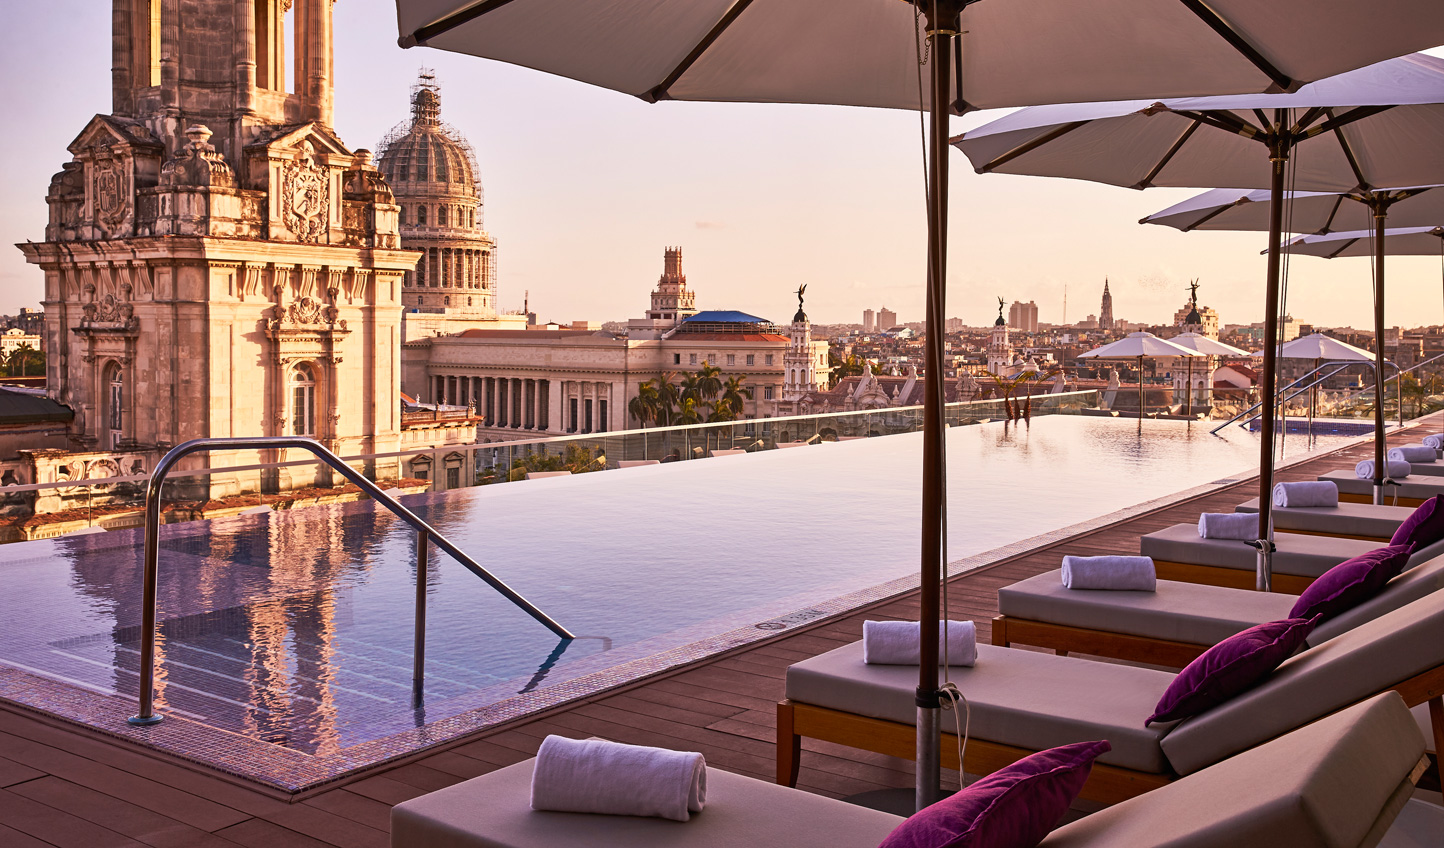 Blend modern luxury with old world splendour up on the rooftop of Gran Hotel Manzana Kempinski Old Habana